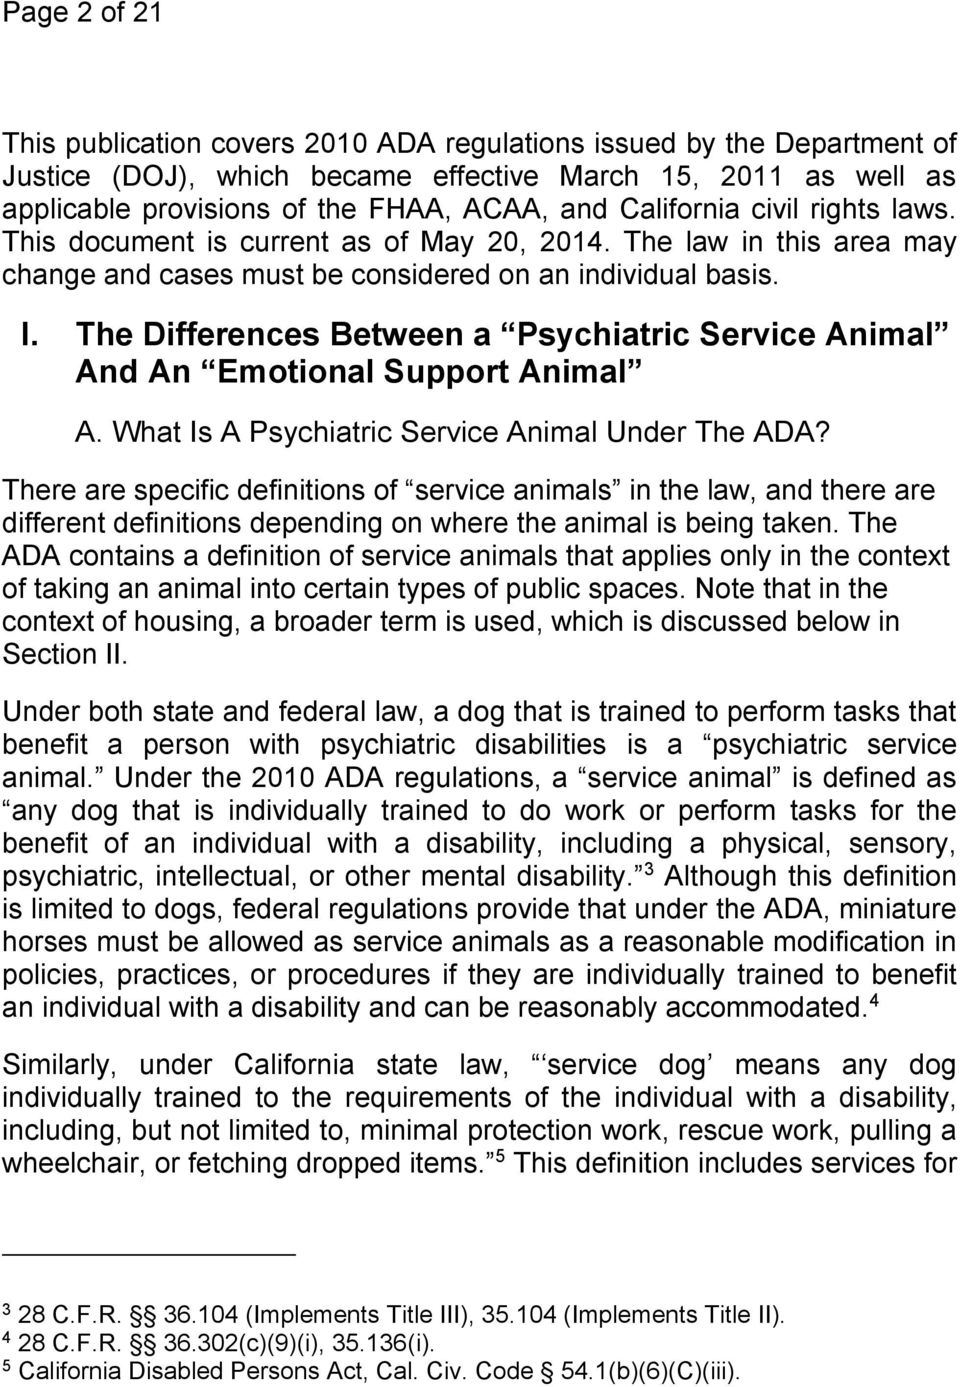 New Doj Advisory Service Animals And >> Psychiatric Service And Emotional Support Animals Pdf